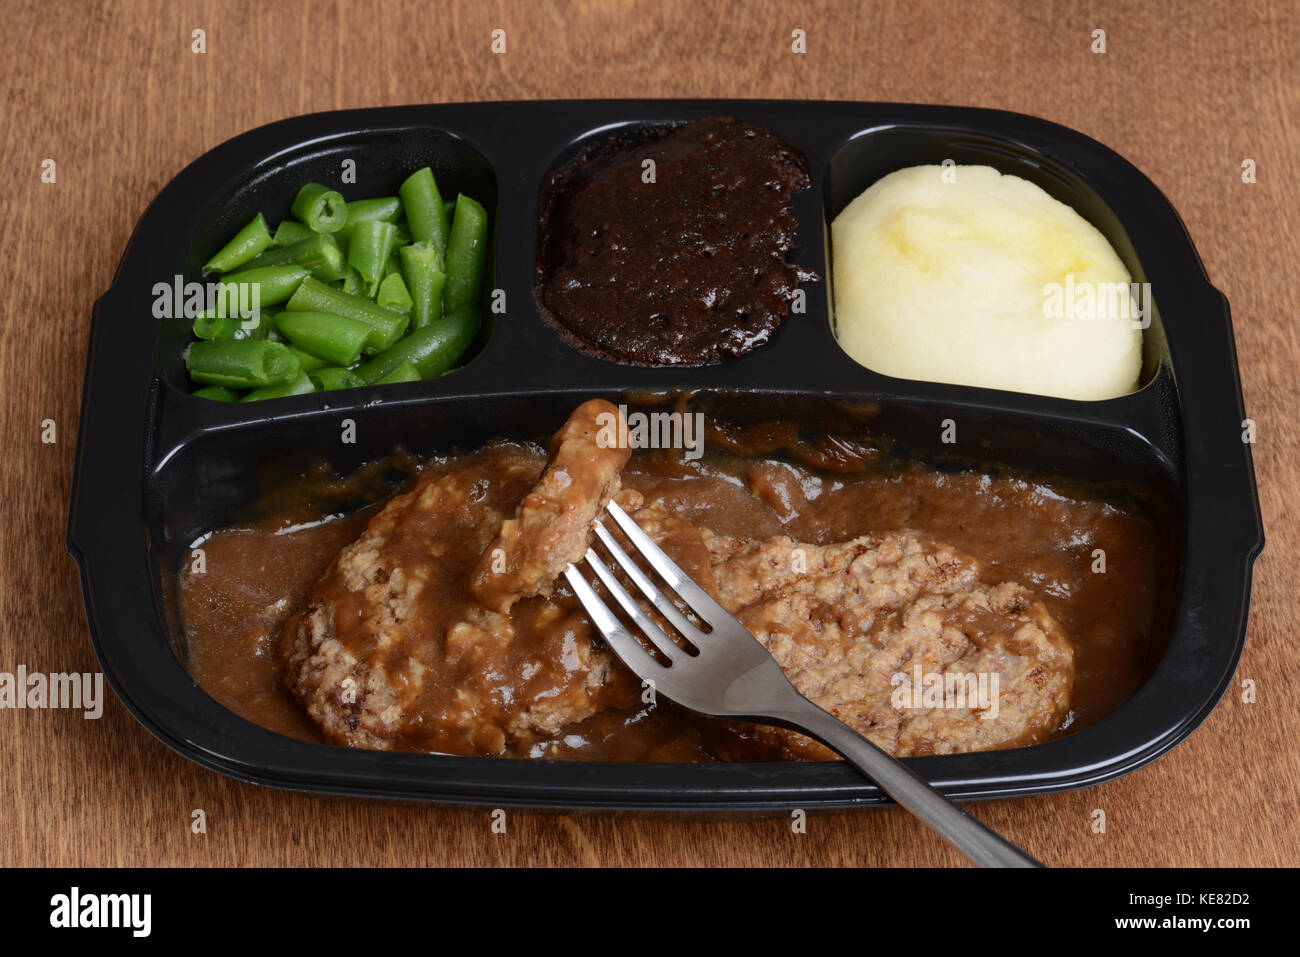 salisbury steak tv dinner with a fork Stock Photo